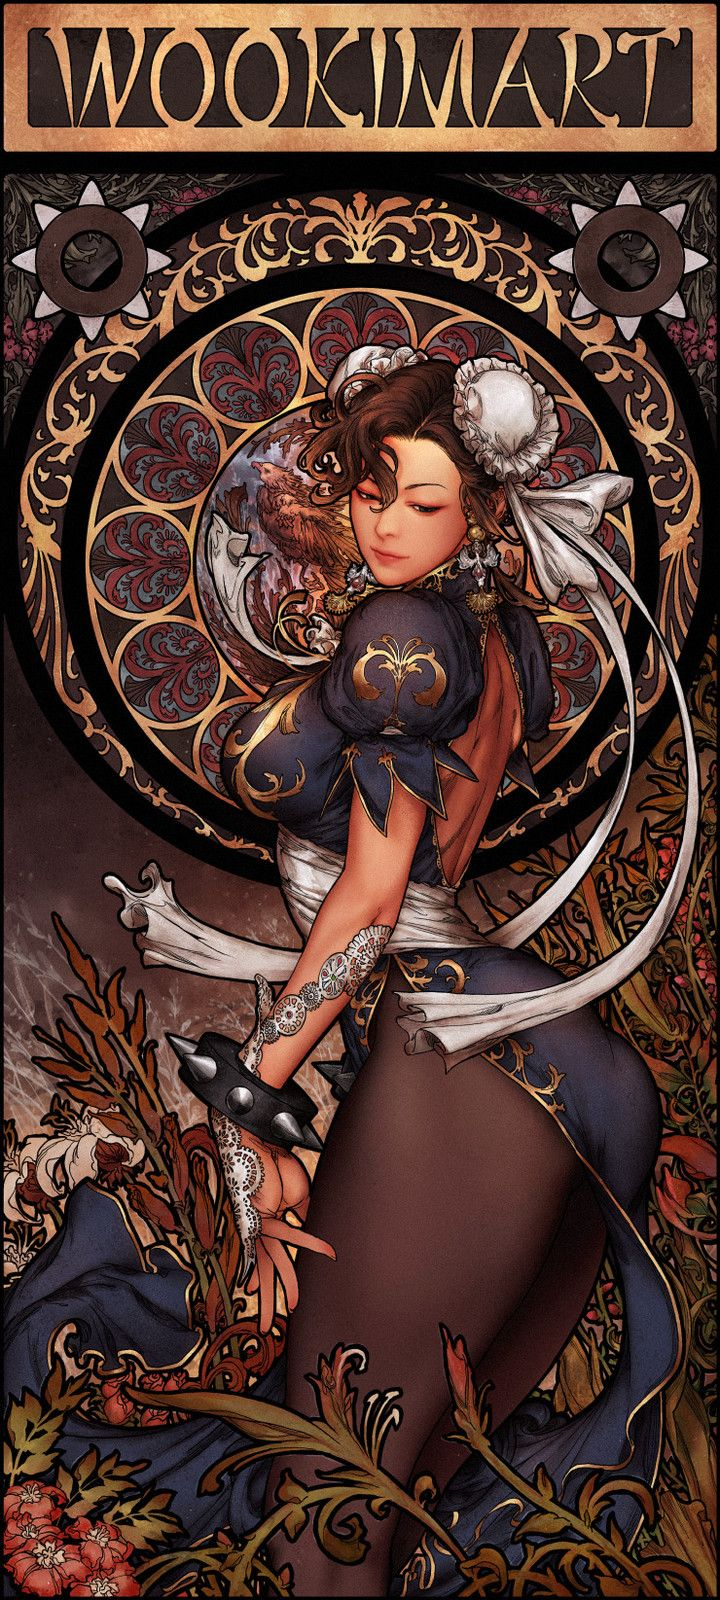 Art Nouveau Chun-Li, Woo Kim on ArtStation at https://www.artstation.com/artwork/K42KB